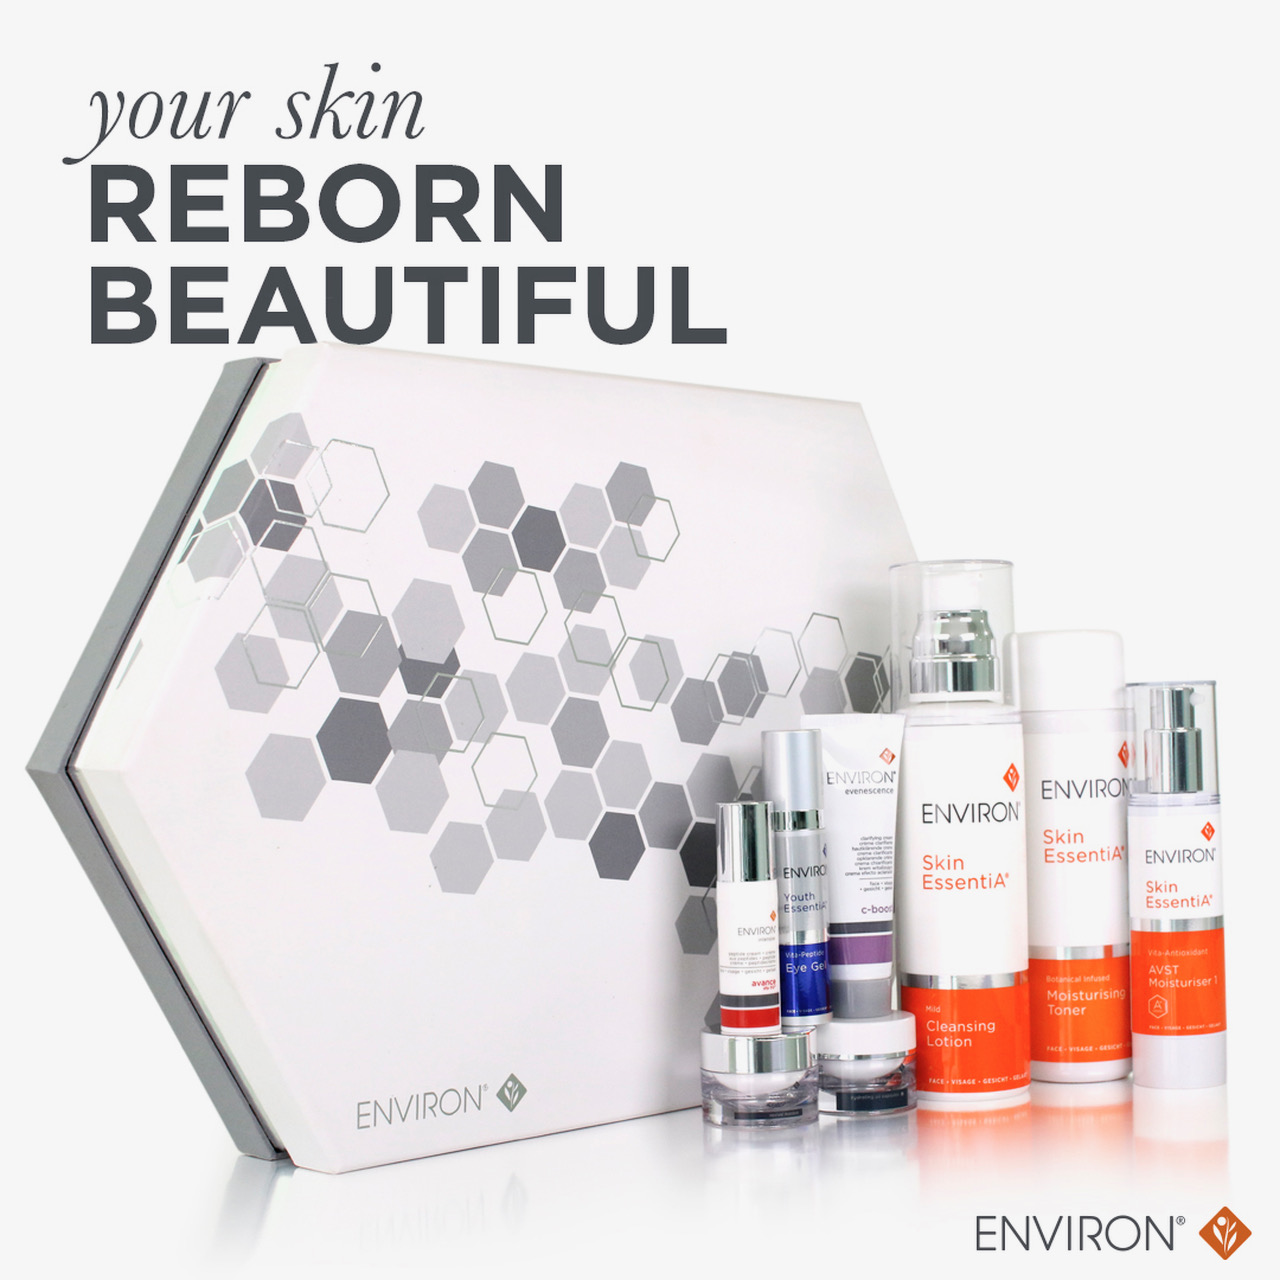 Advanced skincare brand, Environ, for mobile facial treatments in London.